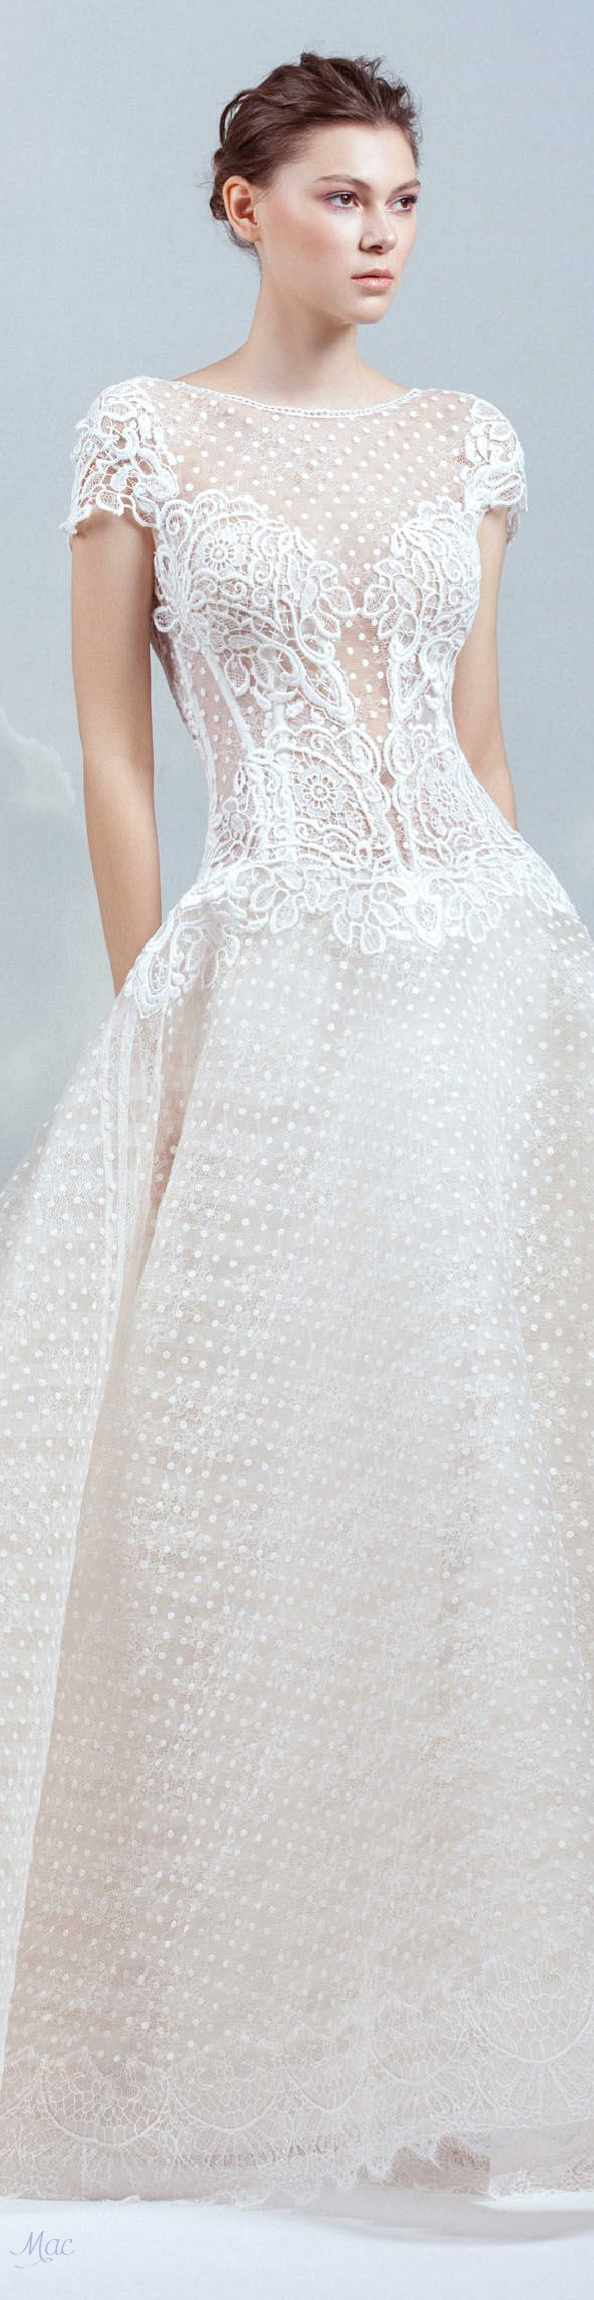 Spring bridal gemy maalouf i donut remember pinning this i am